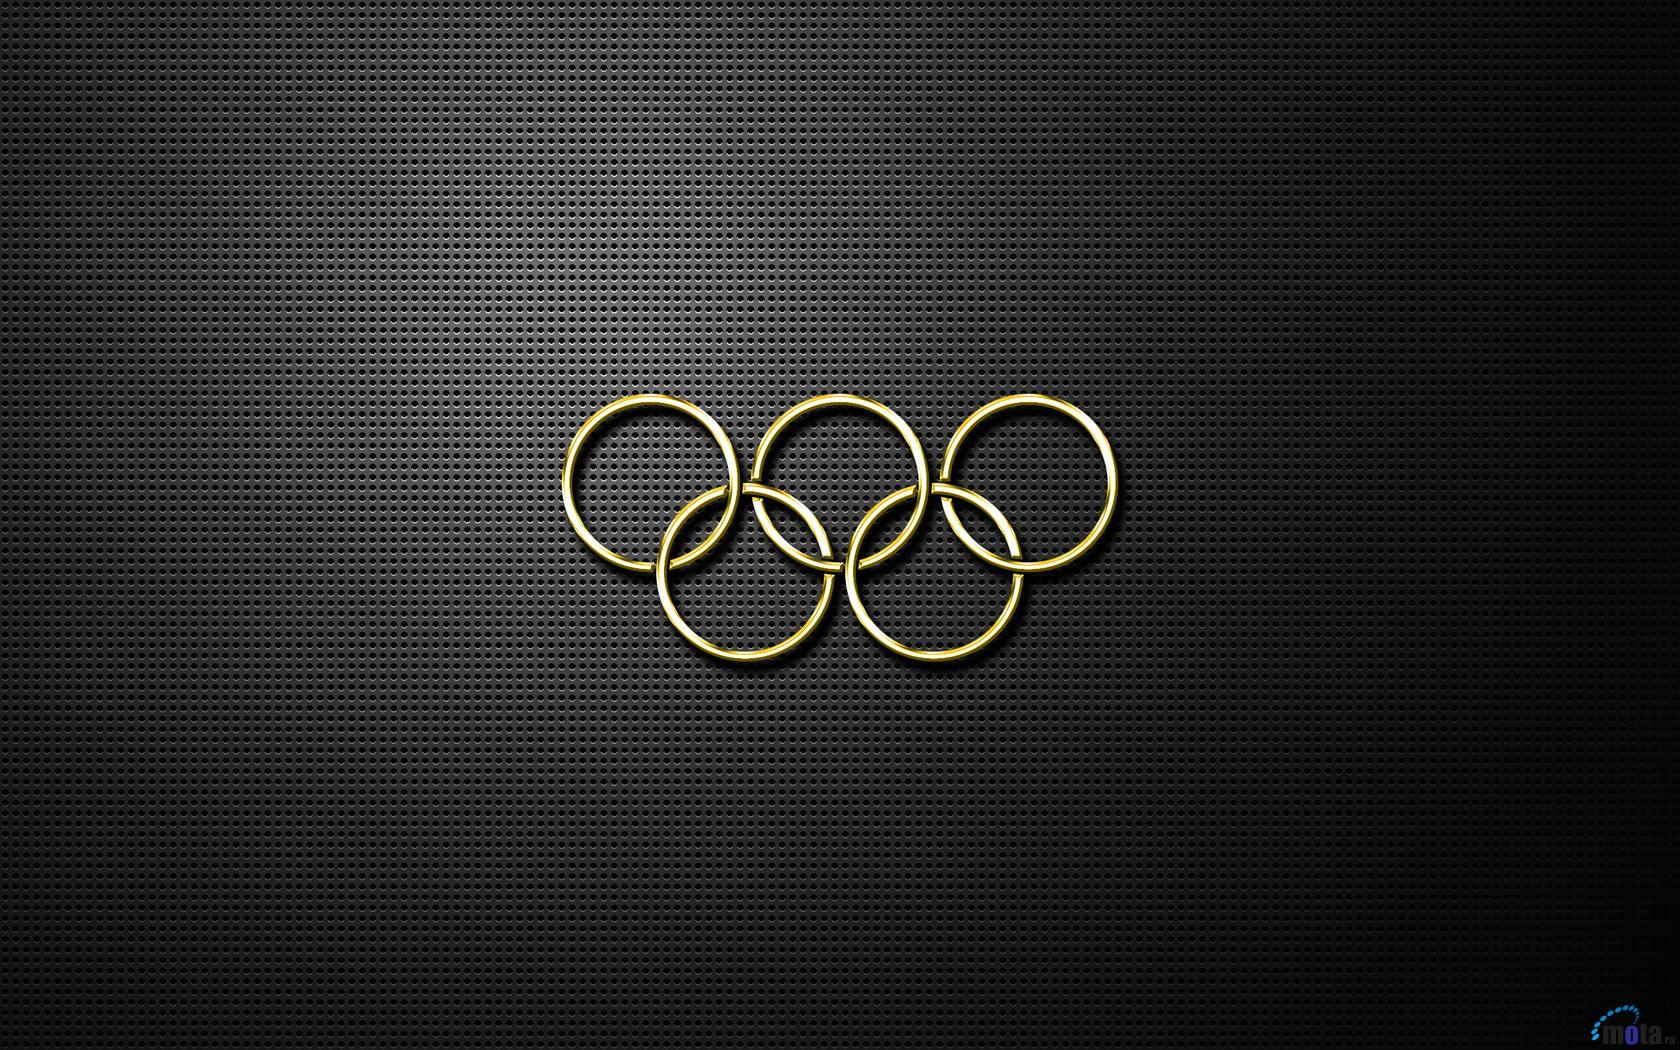 1500x500 Olympic Rings Twitter Header Photo